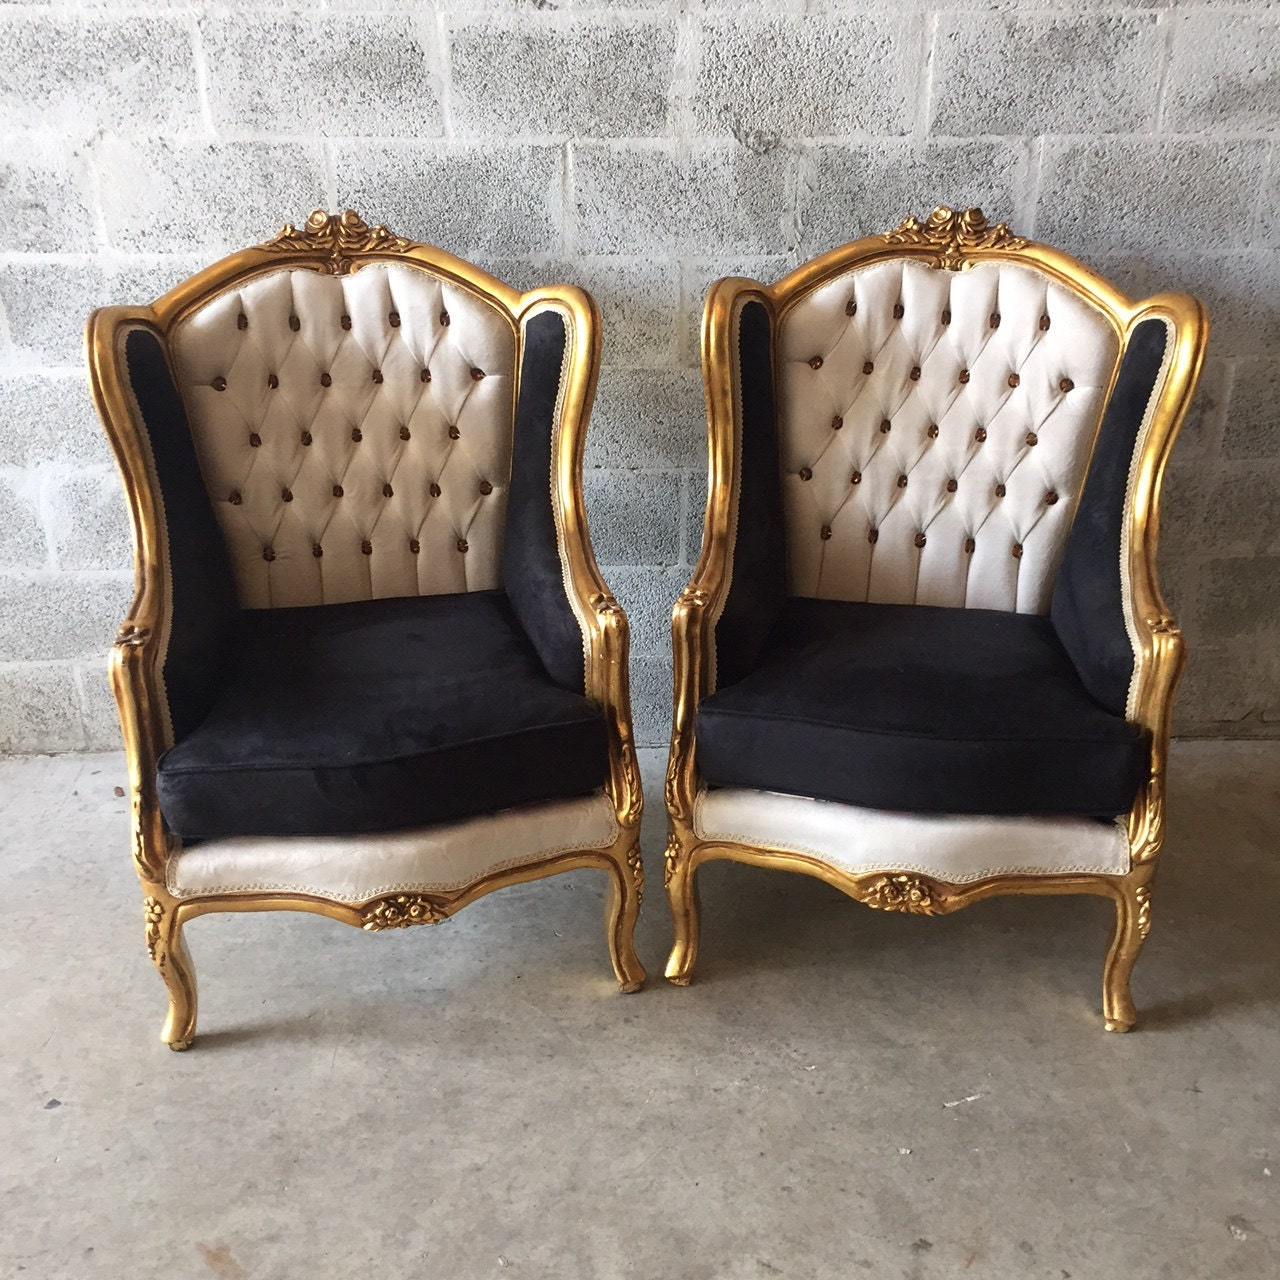 Baroque Tufted Settee Furniture Italian Antique Sofa Refinished Gold Leaf  Reupholster Black Velvet Champagne Tufted French Louis XVI Rococo - Baroque Tufted Settee Furniture Italian Antique Sofa Refinished Gold